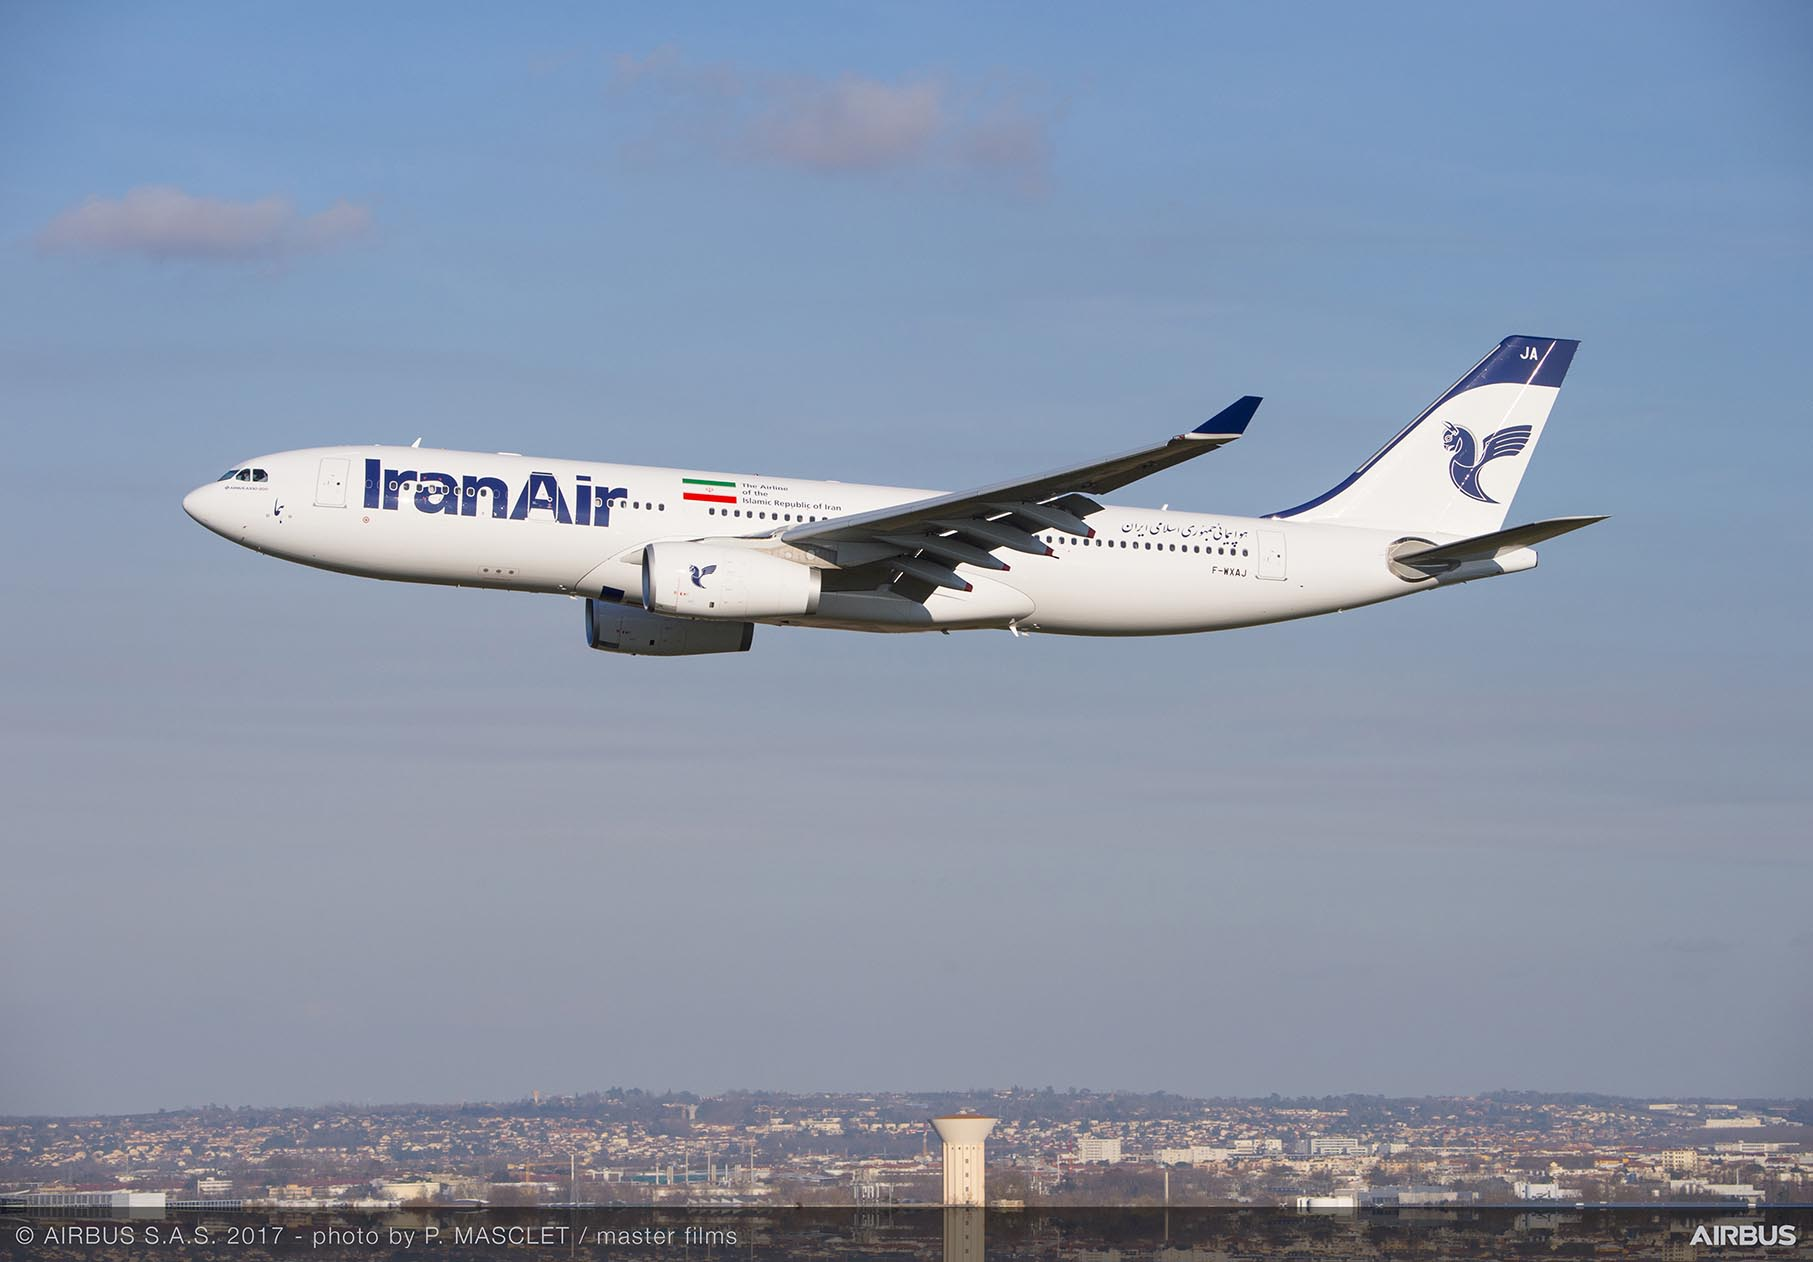 Airbus delivers second plane to Iran Air